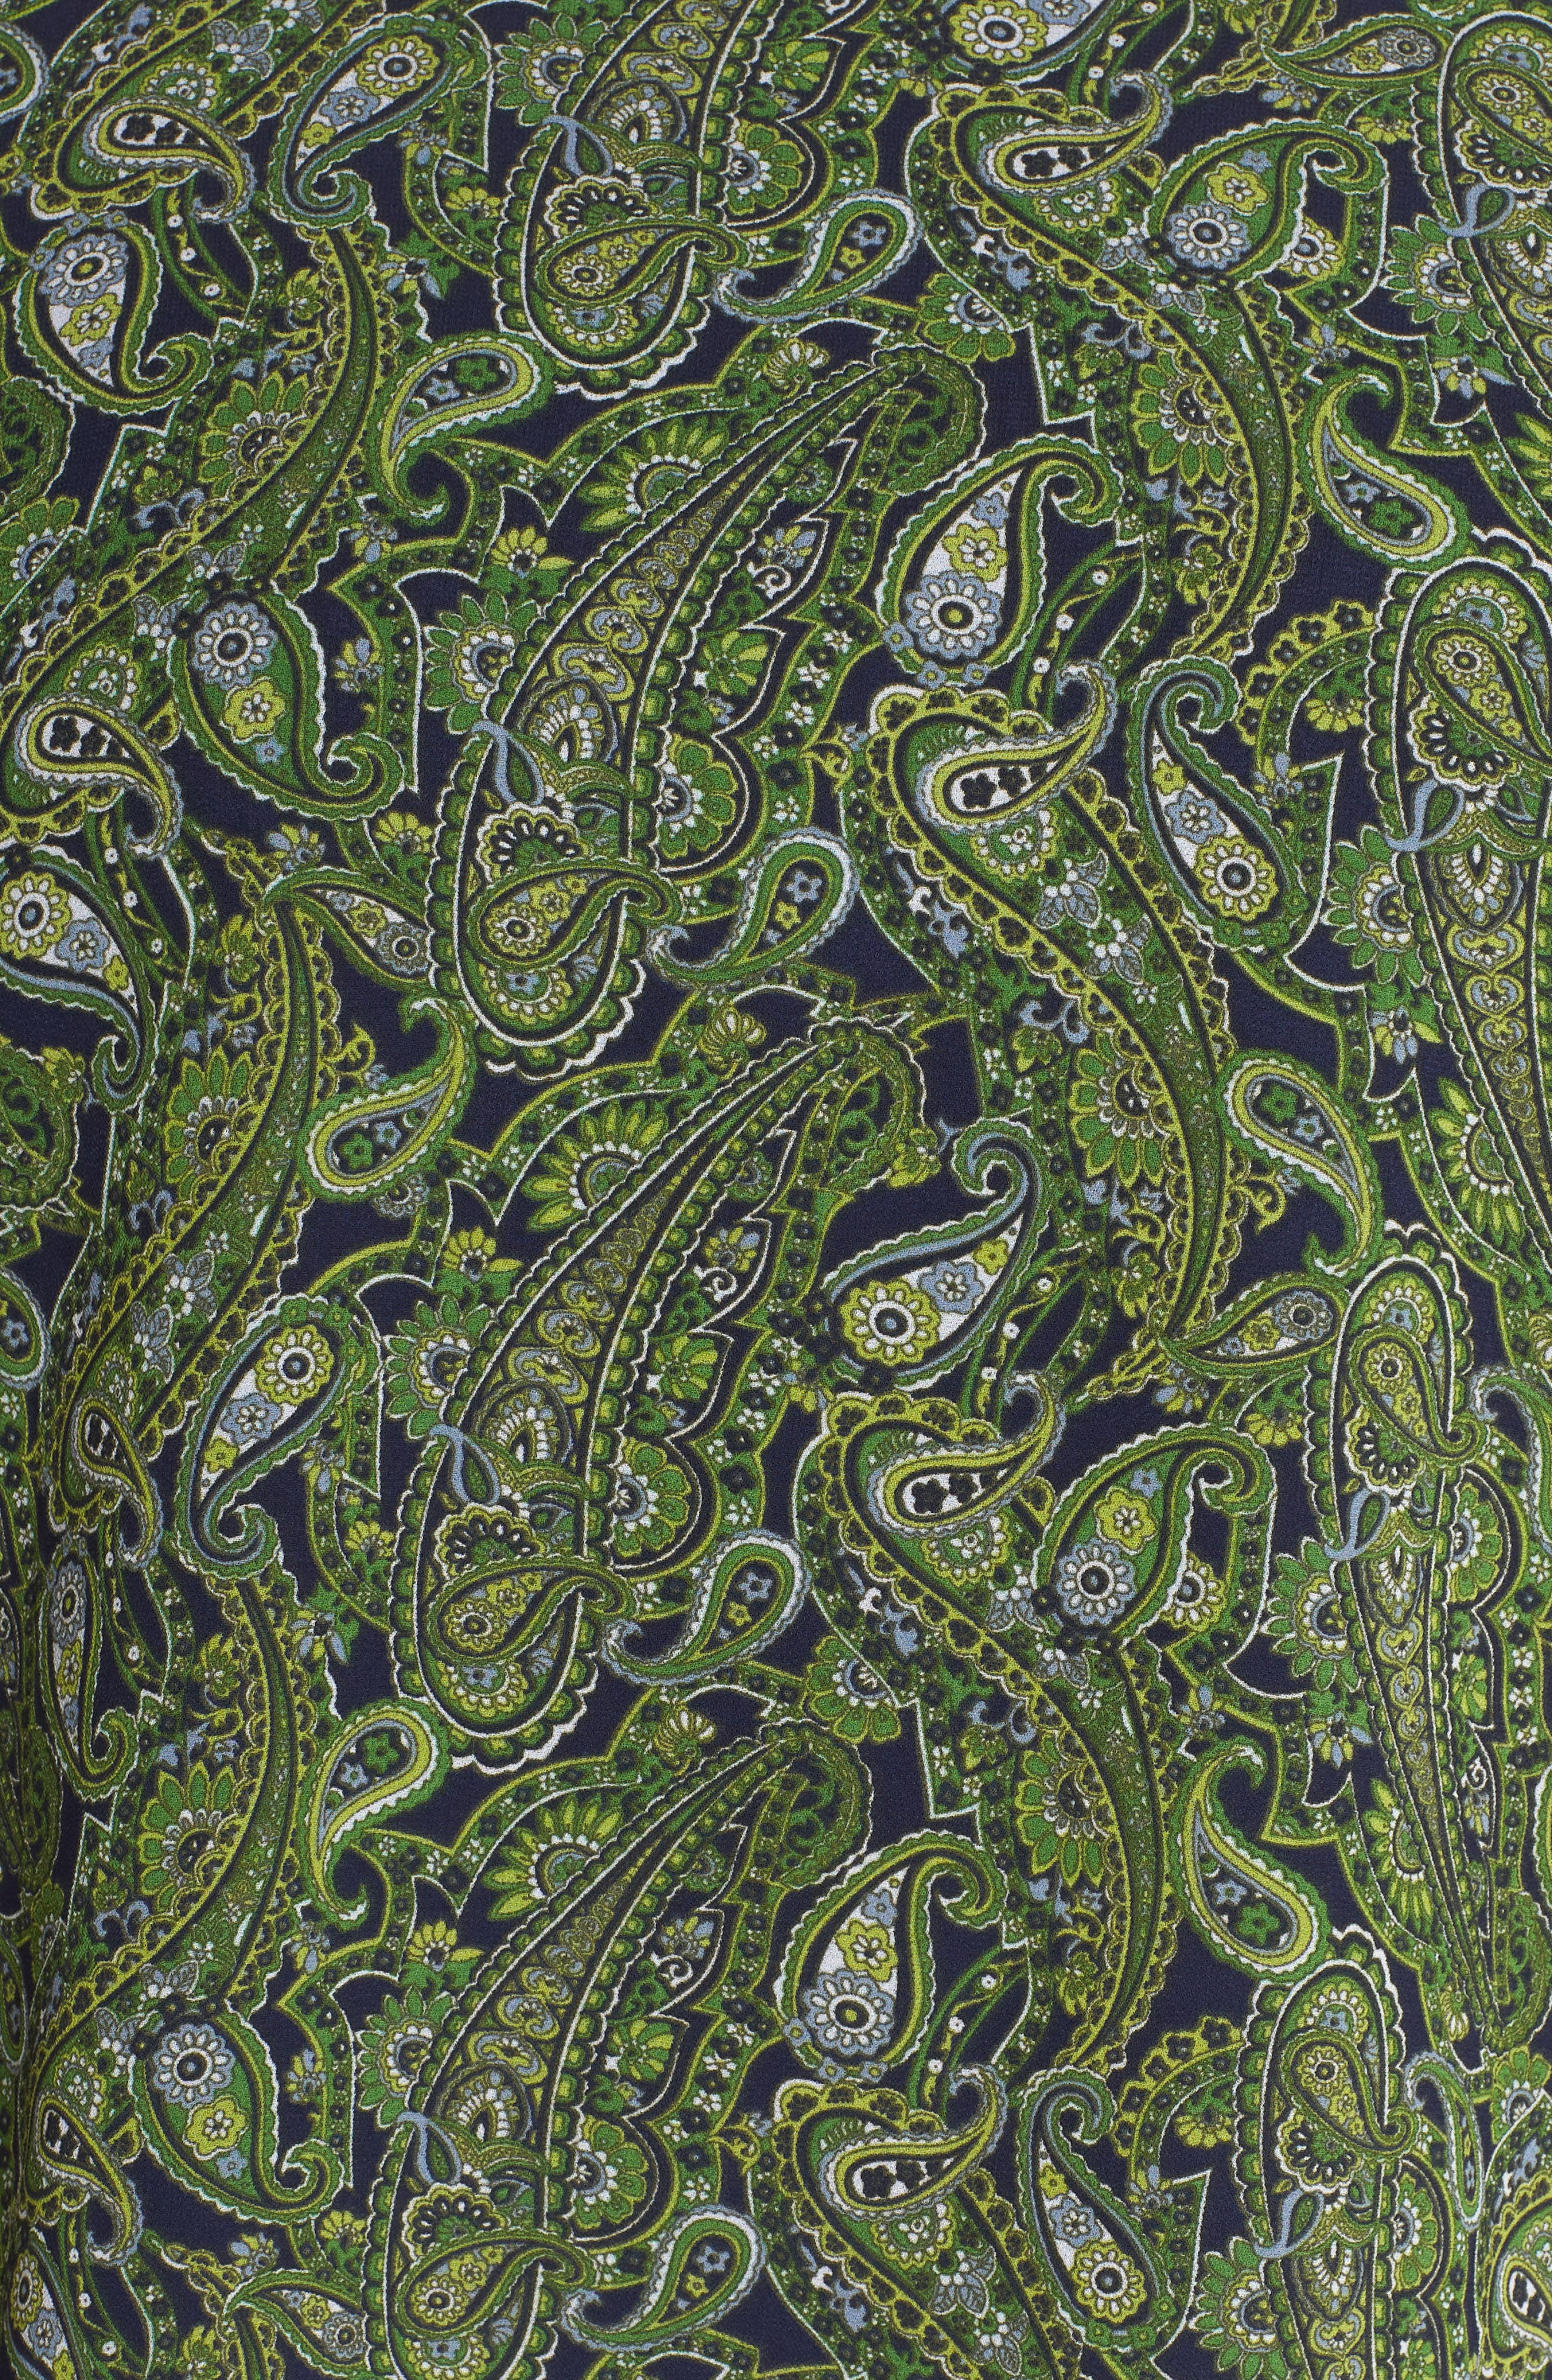 Paisley Paradise Layered Top,                             Alternate thumbnail 6, color,                             True Navy/ Green Apple Mu